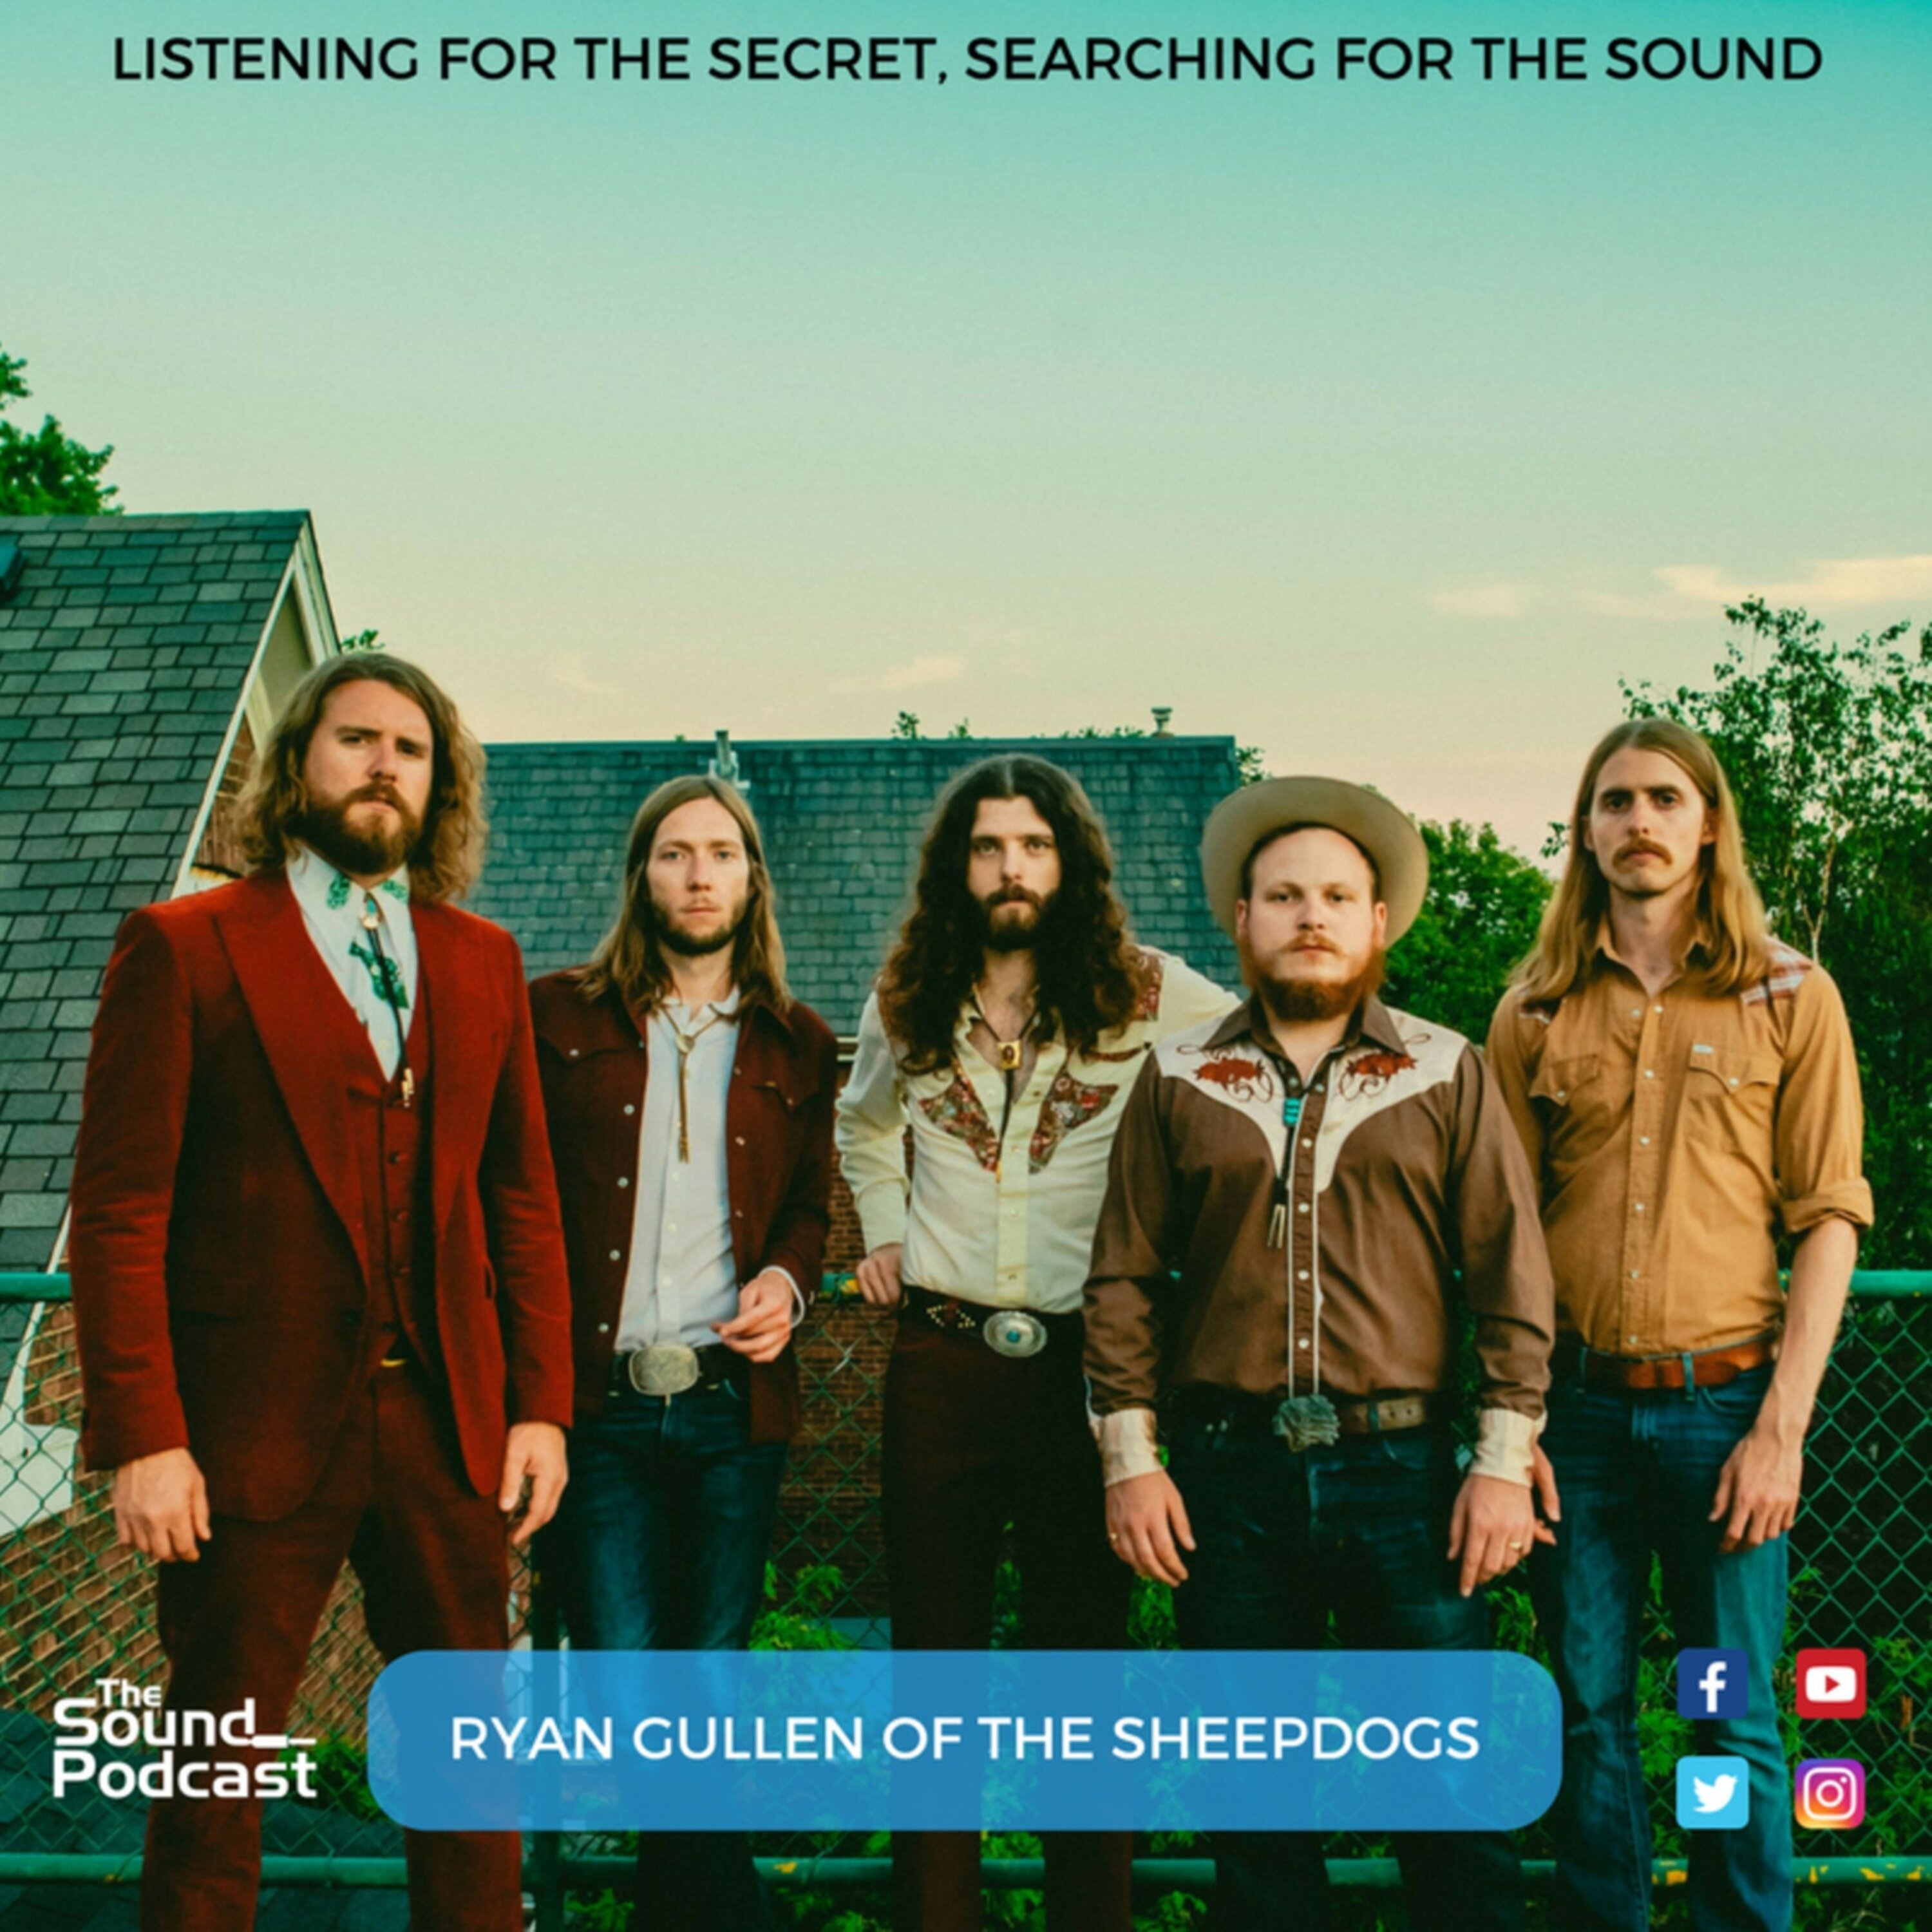 Episode 72: Ryan Gullen of The Sheepdogs